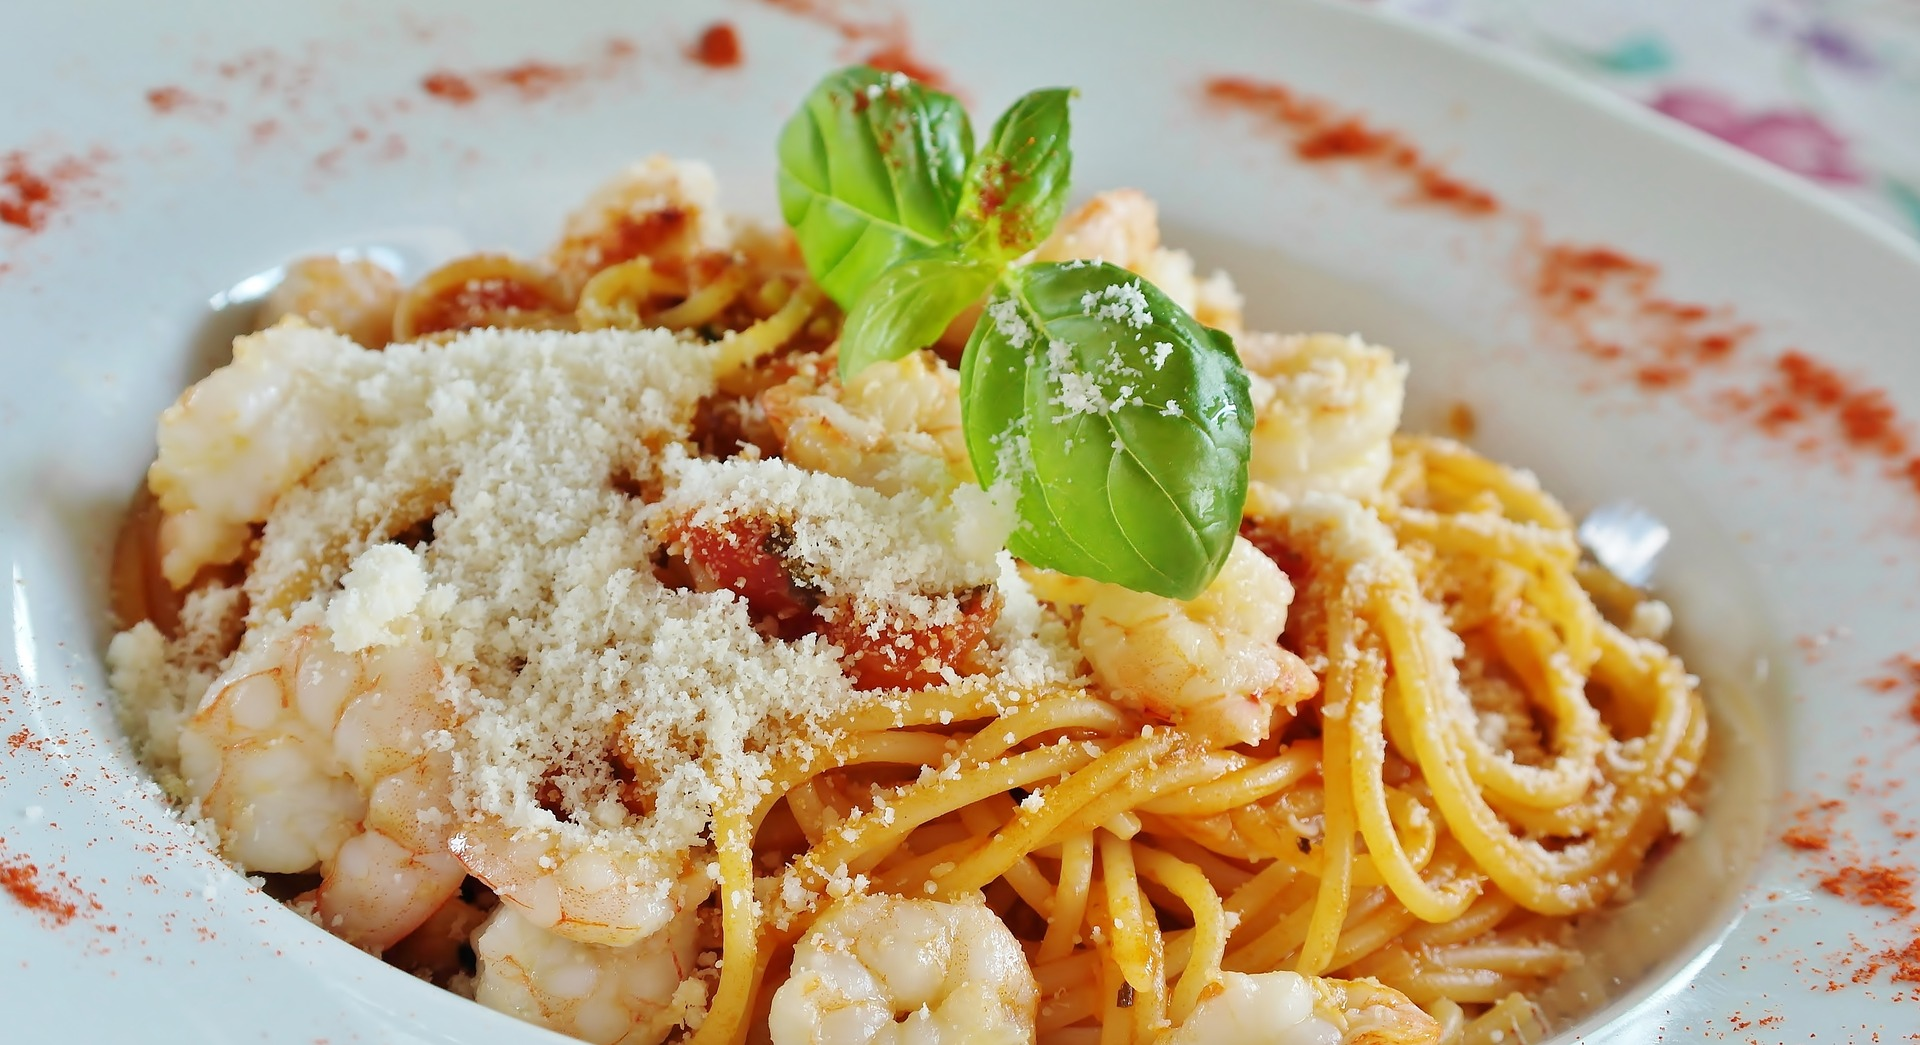 Pasta with garlic and shrimps